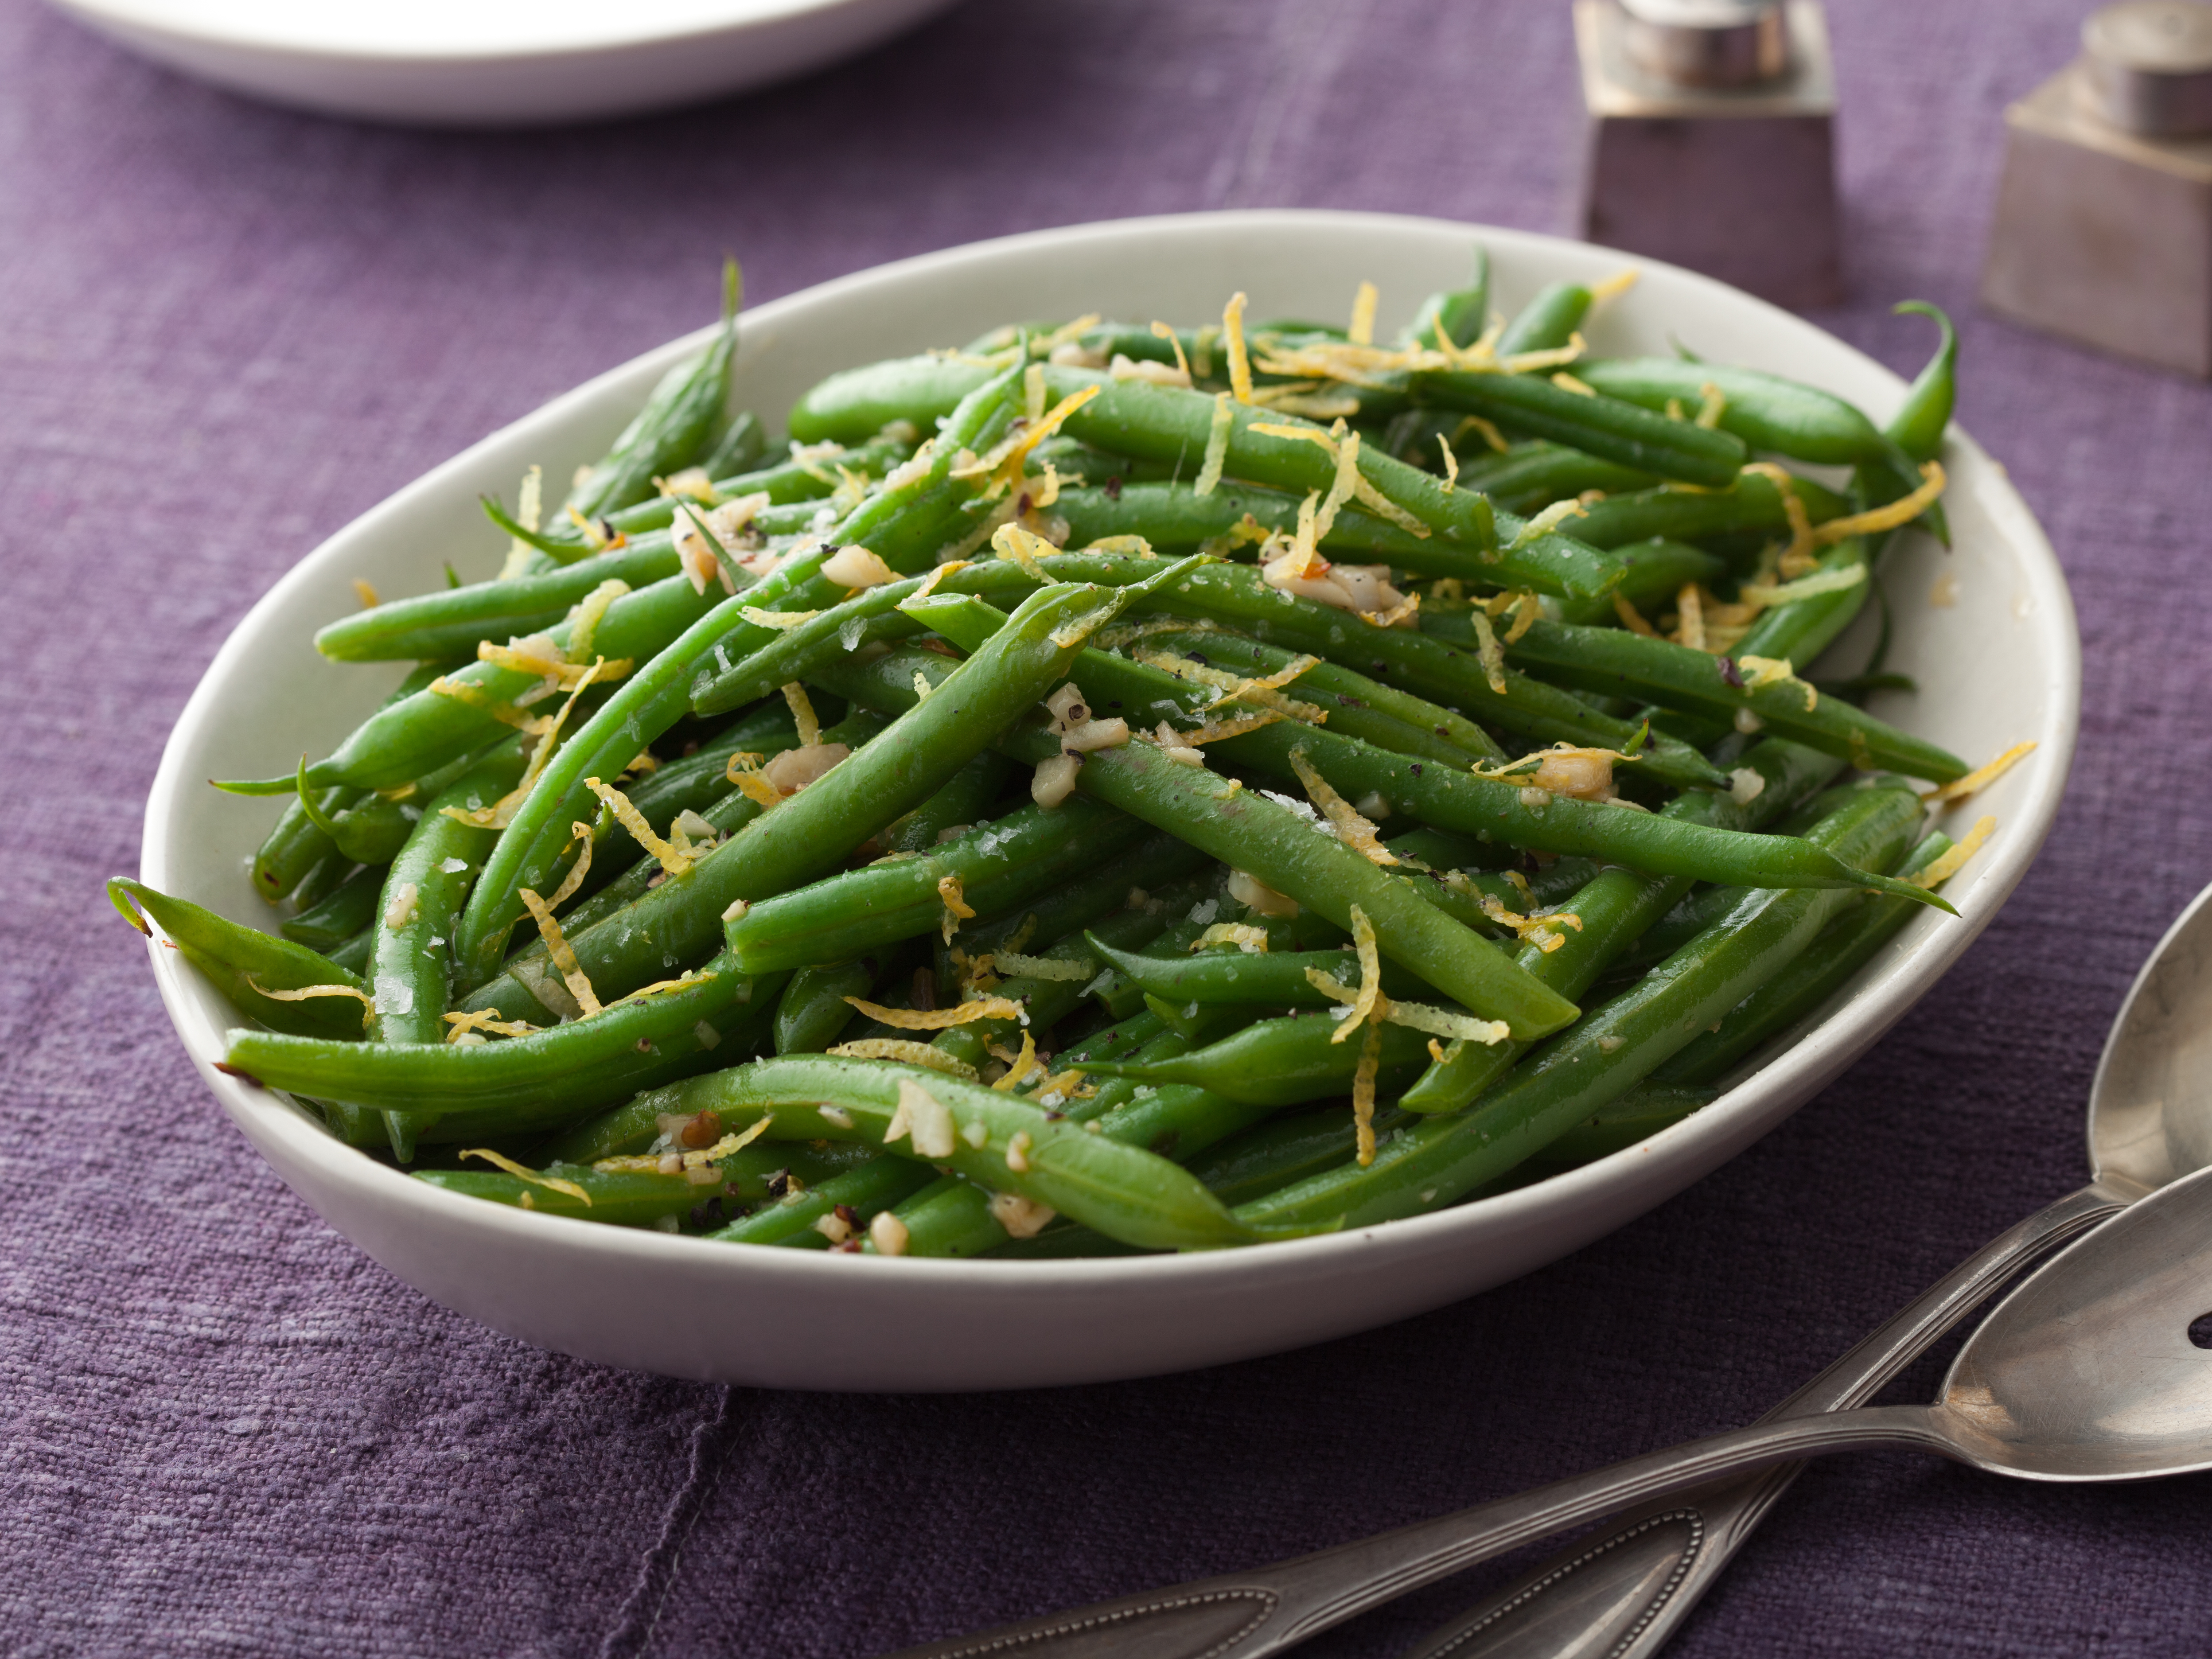 Recipes Course Side Dish Vegetables Green Beans with Lemon and Garlic